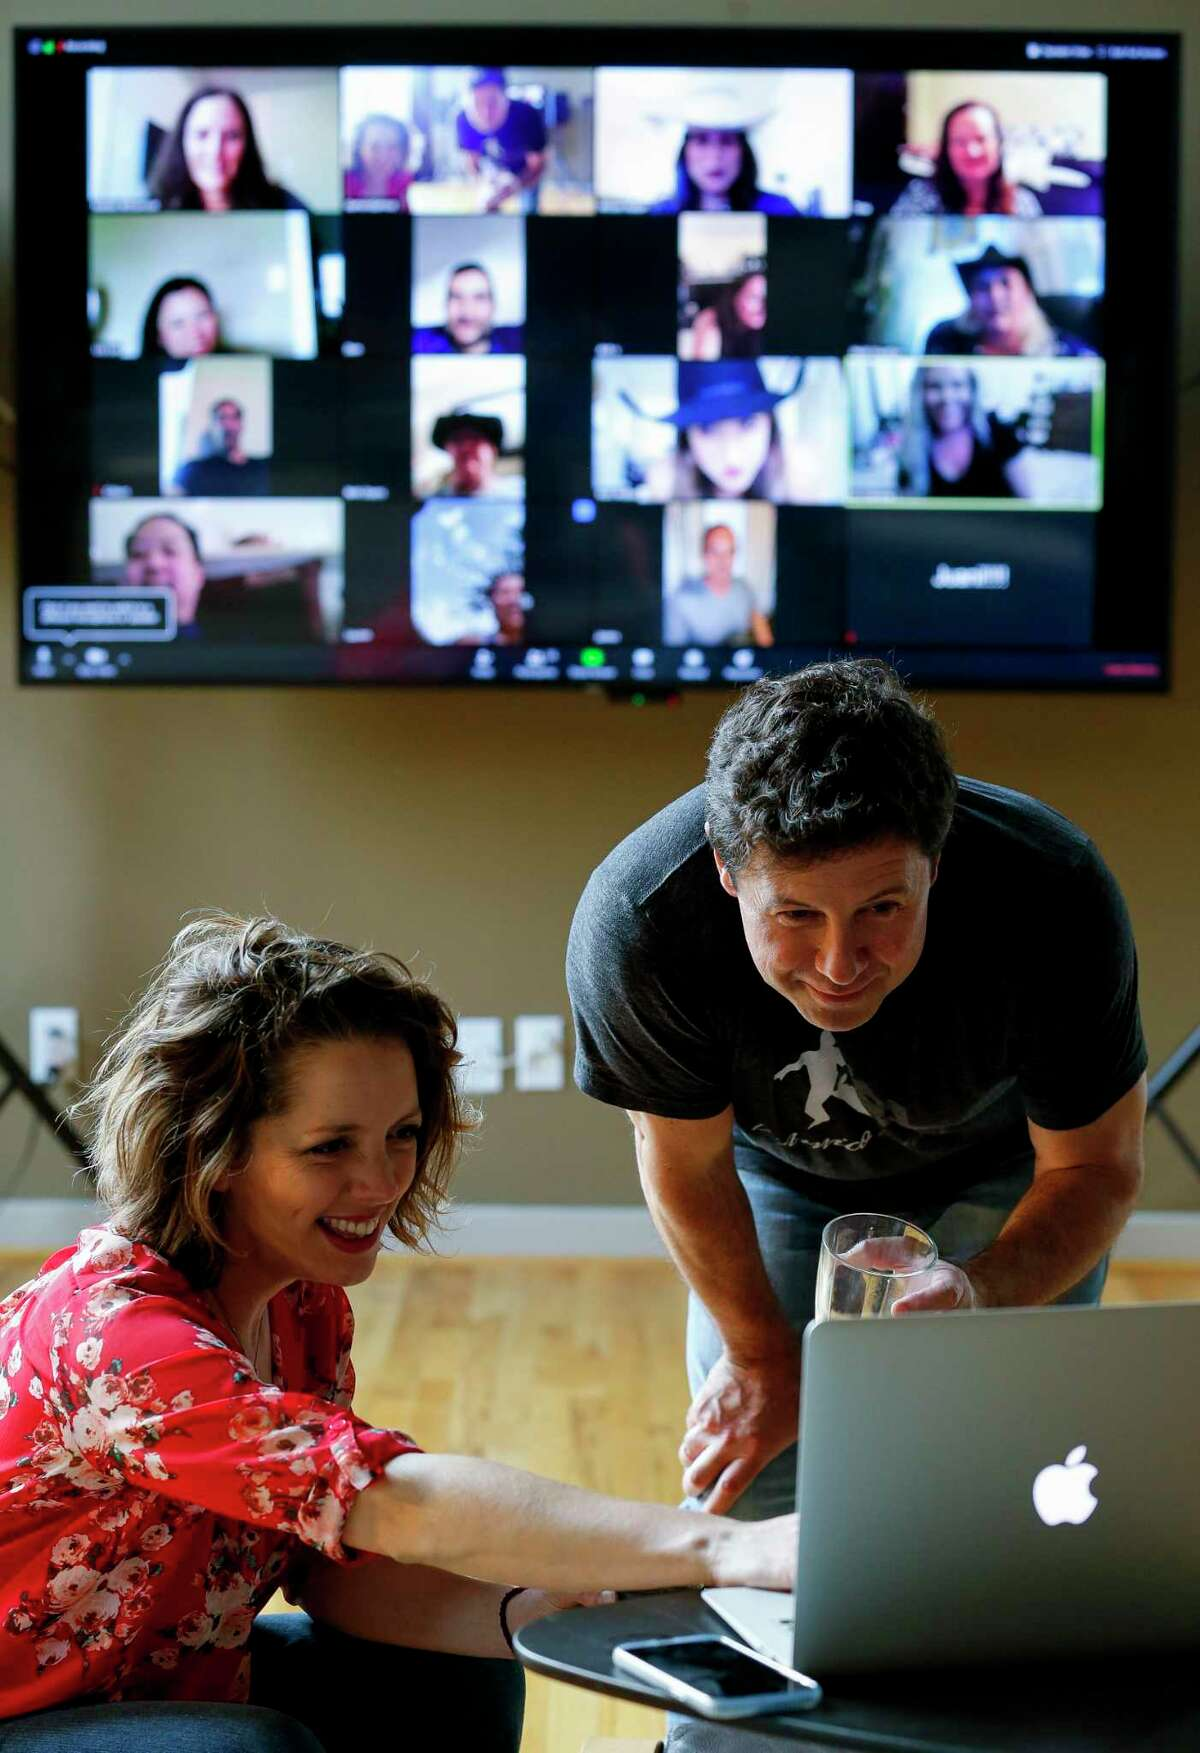 Damon D'Amico, foreground, and his girlfriend Amanda McClure video chat with some of his Country Western dancing student at his home Tuesday, April 7, 2020, in Houston. Among his students are cancer survivors who are immunocompromised, so their Zoom video chats help them reconnect and dance in the middle of the COVID-19 pandemic.